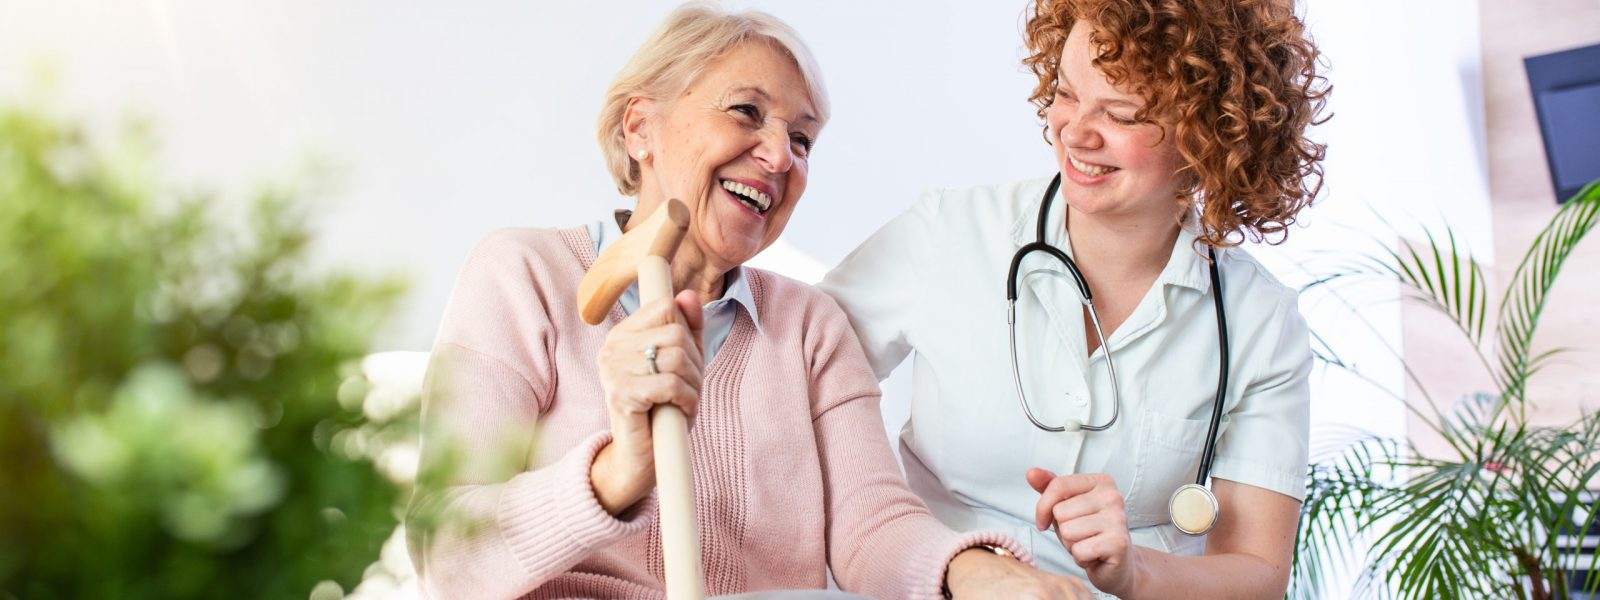 Friendly relationship between smiling caregiver in uniform and happy elderly woman. Supportive young nurse looking at senior woman. Young caring lovely caregiver and happy ward